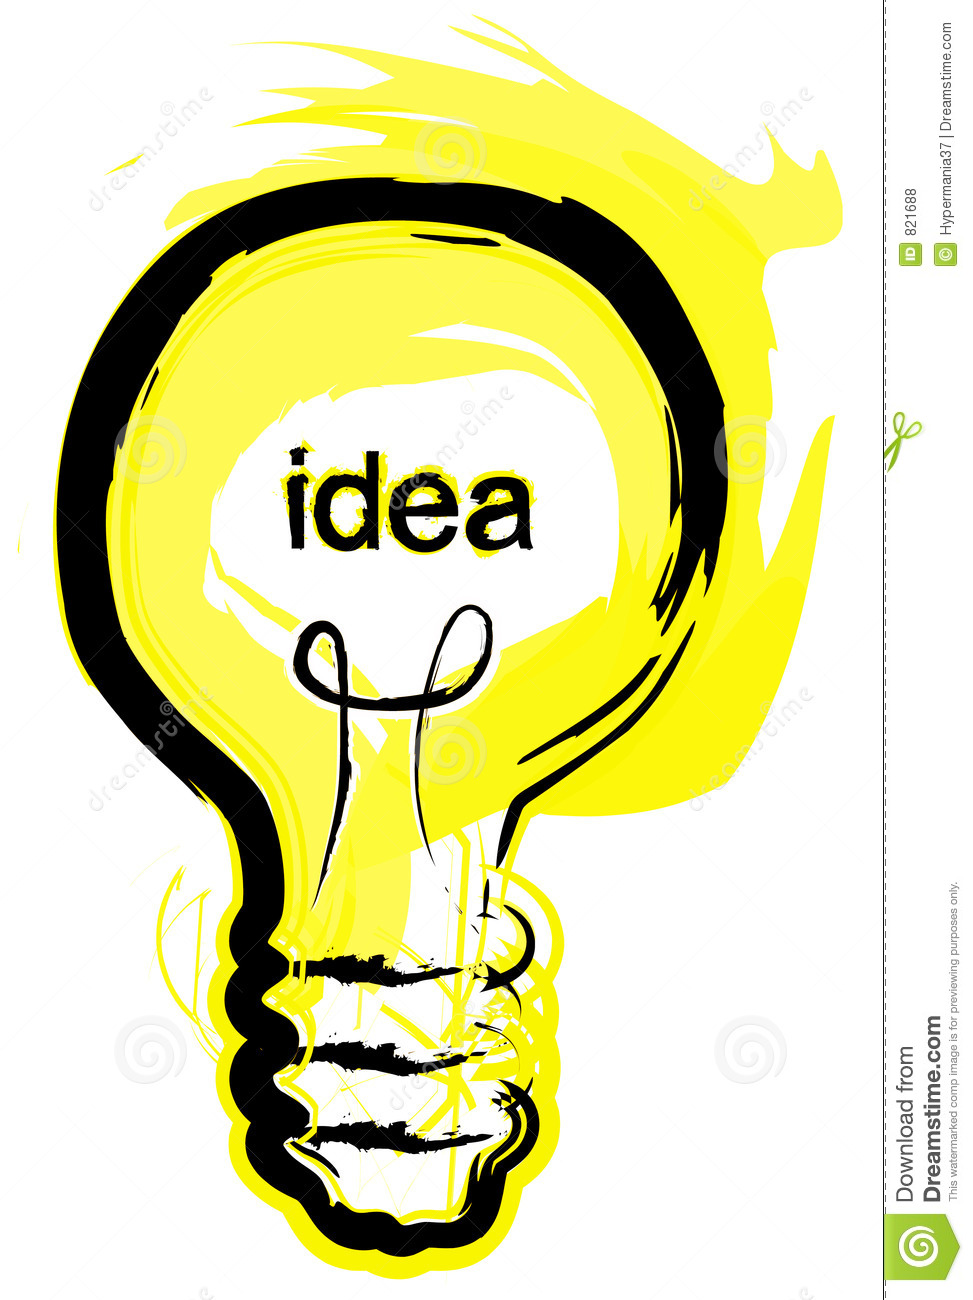 Https Www Dreamstime Com Royalty Free Stock Photos Light Bulb Idea Image821688